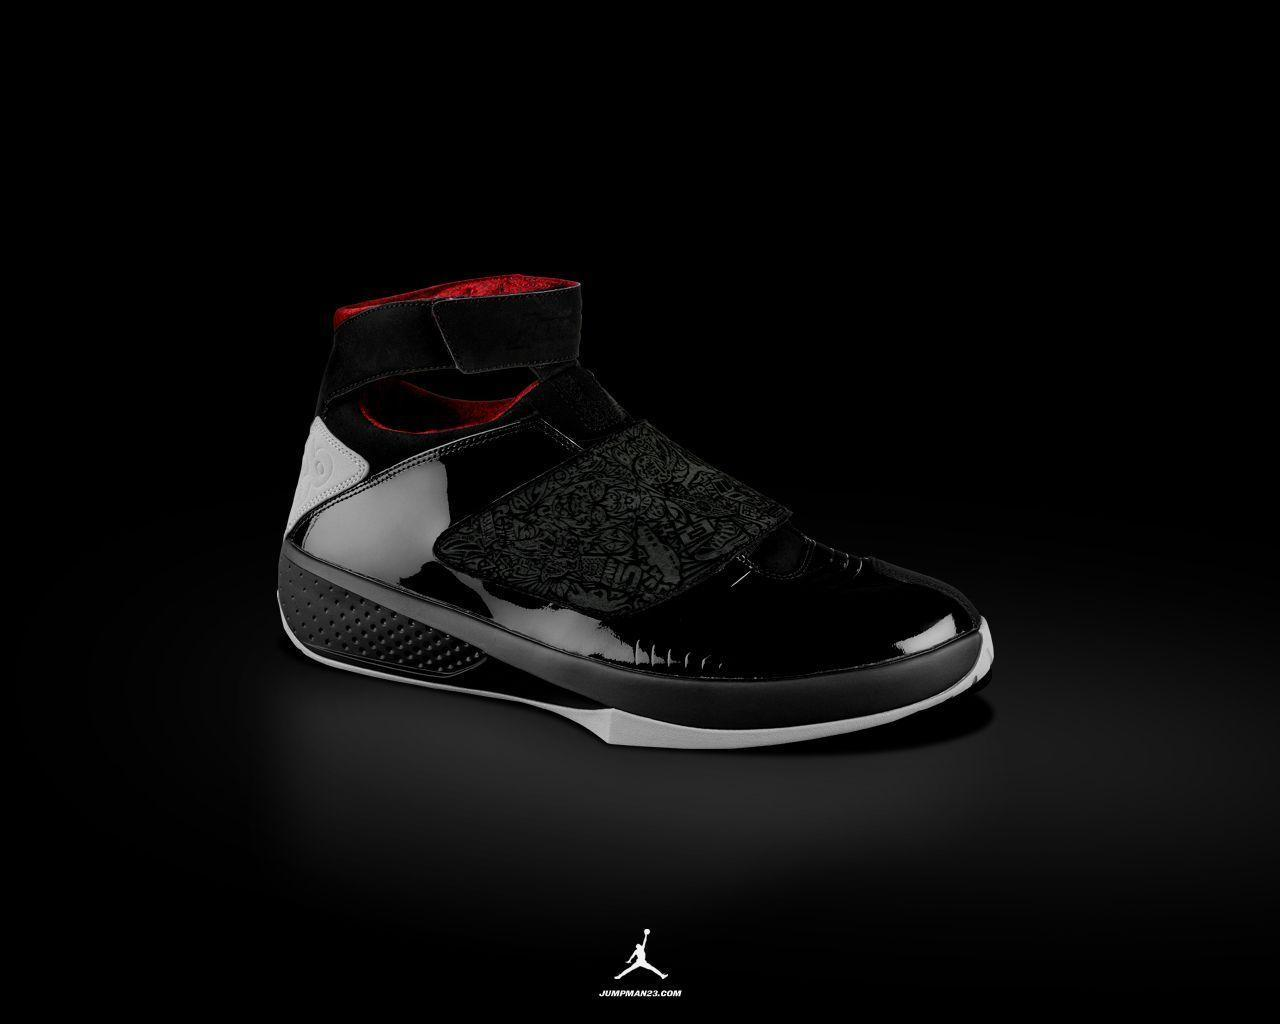 Image For > Air Jordan Shoes Wallpapers Desktop